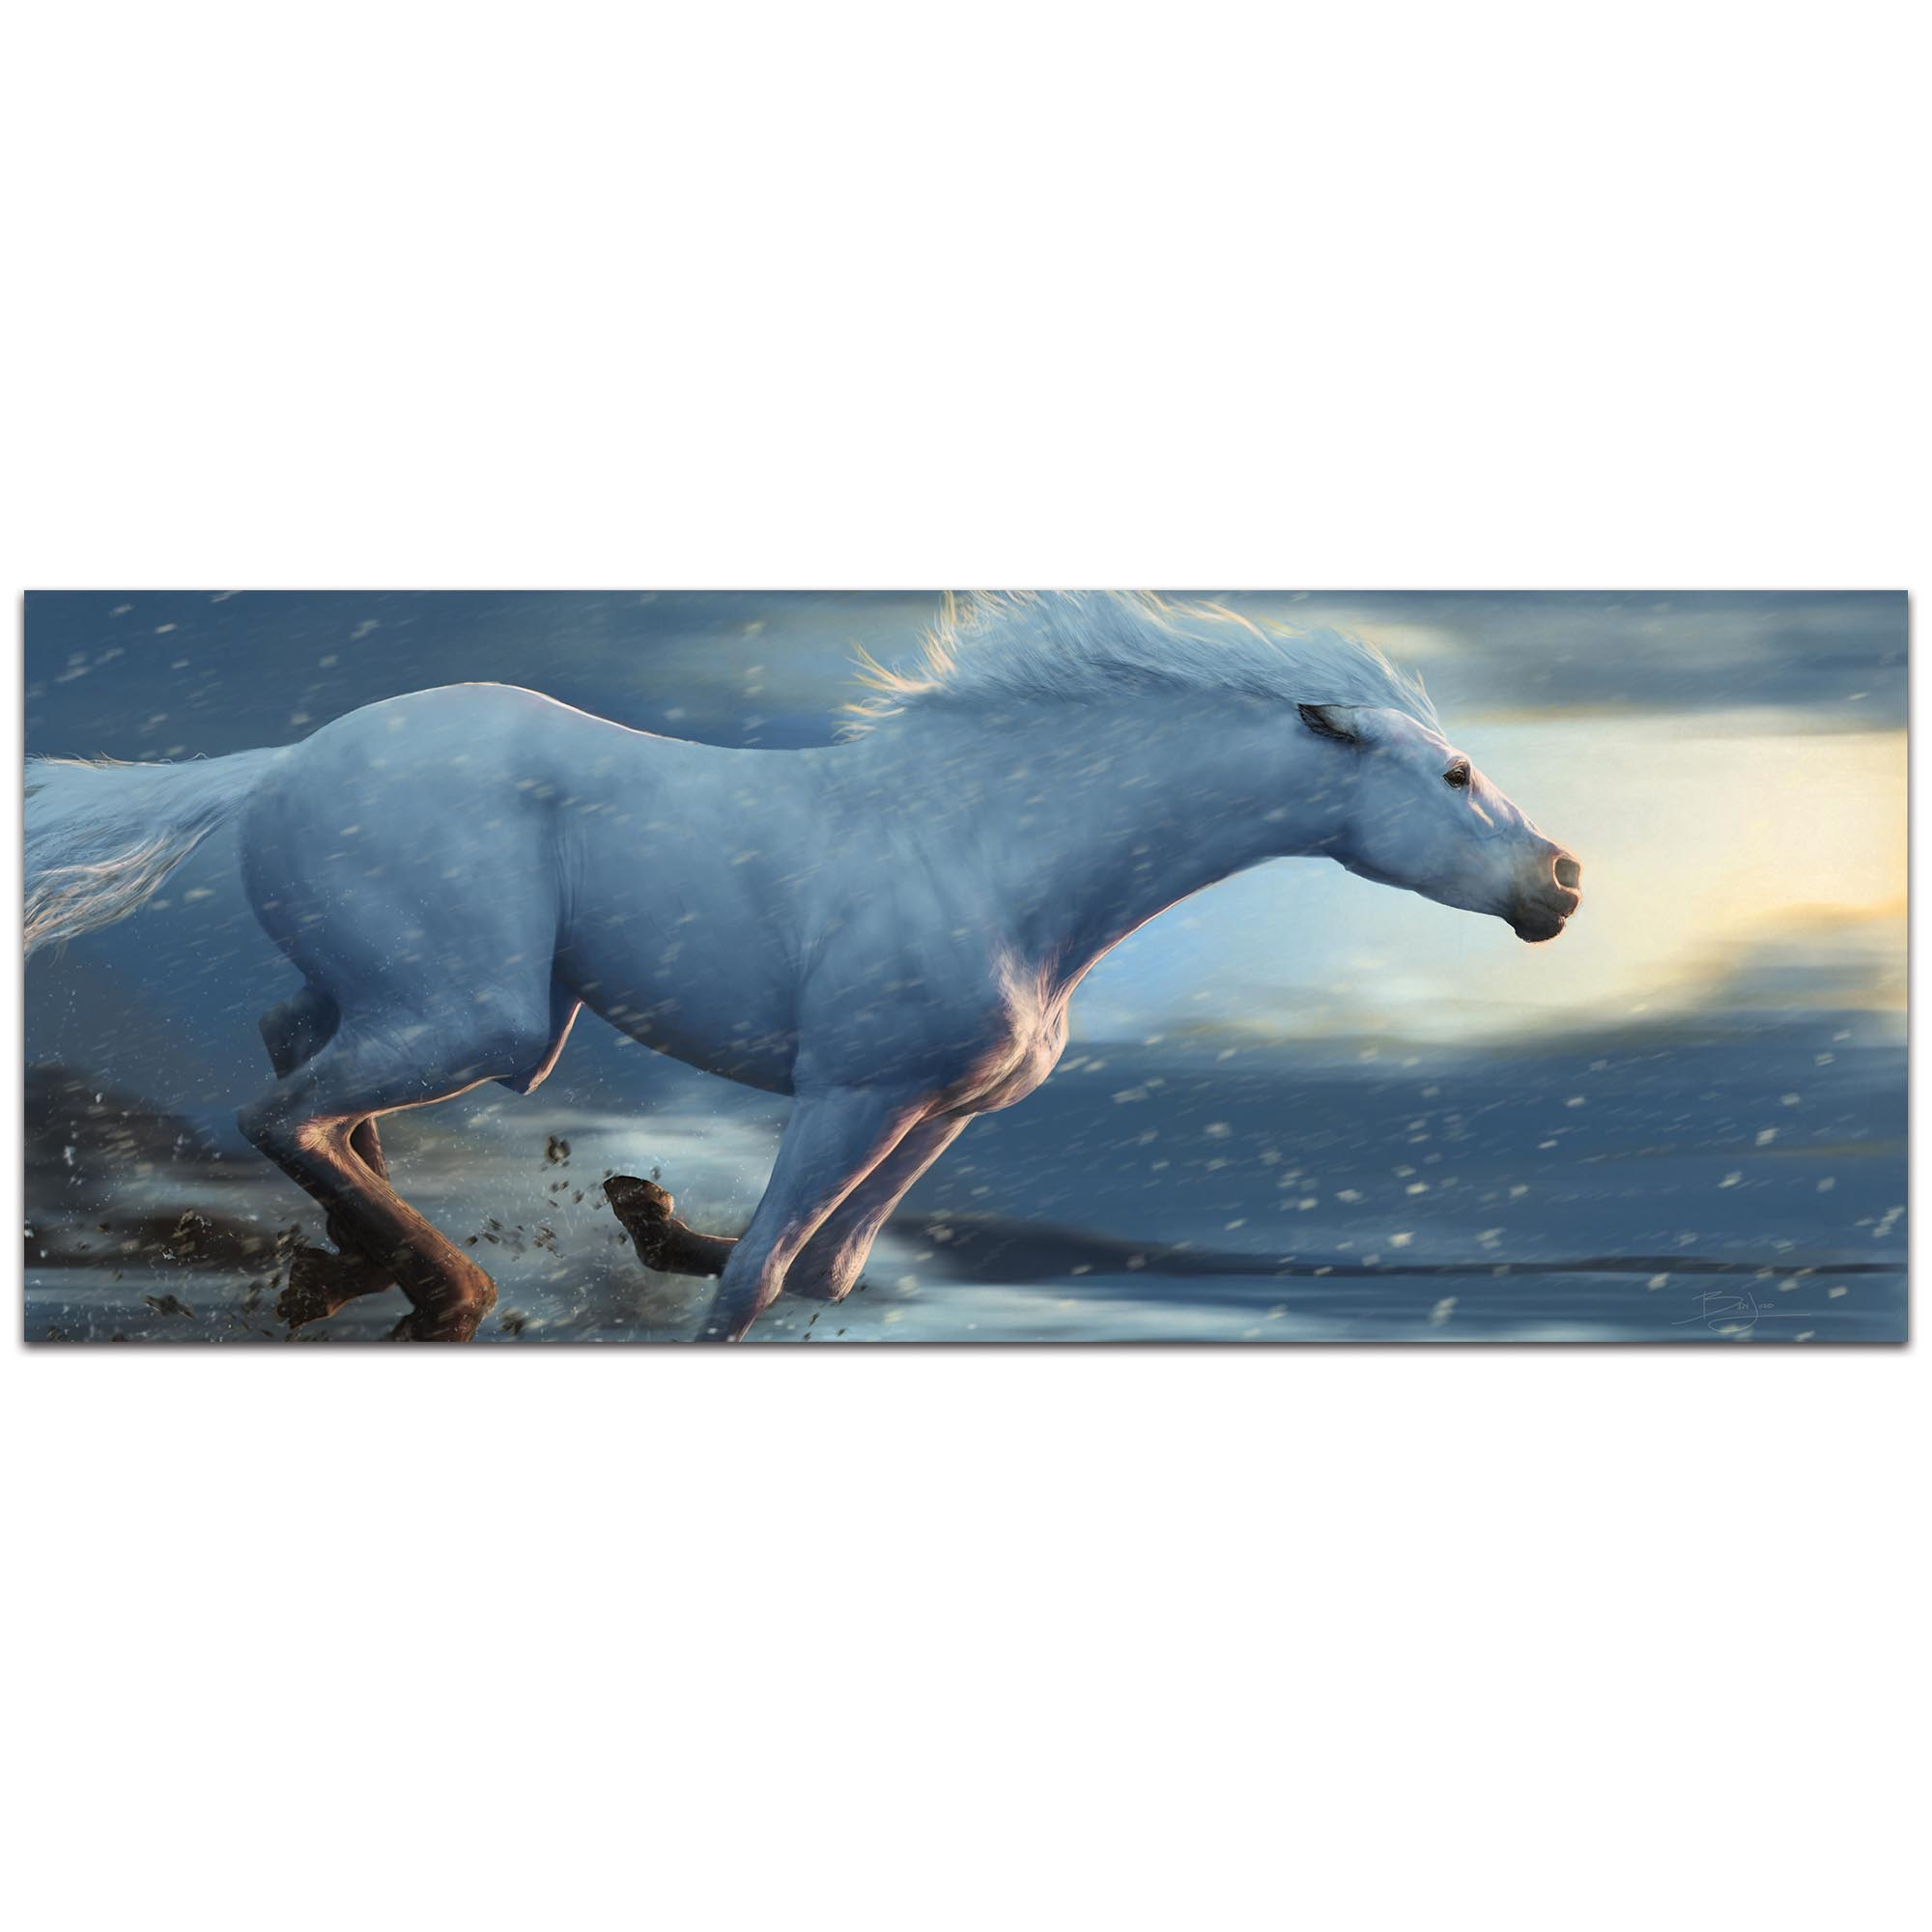 Expressionist Wall Art 'Running Horse' - Wildlife Decor on Metal or Plexiglass